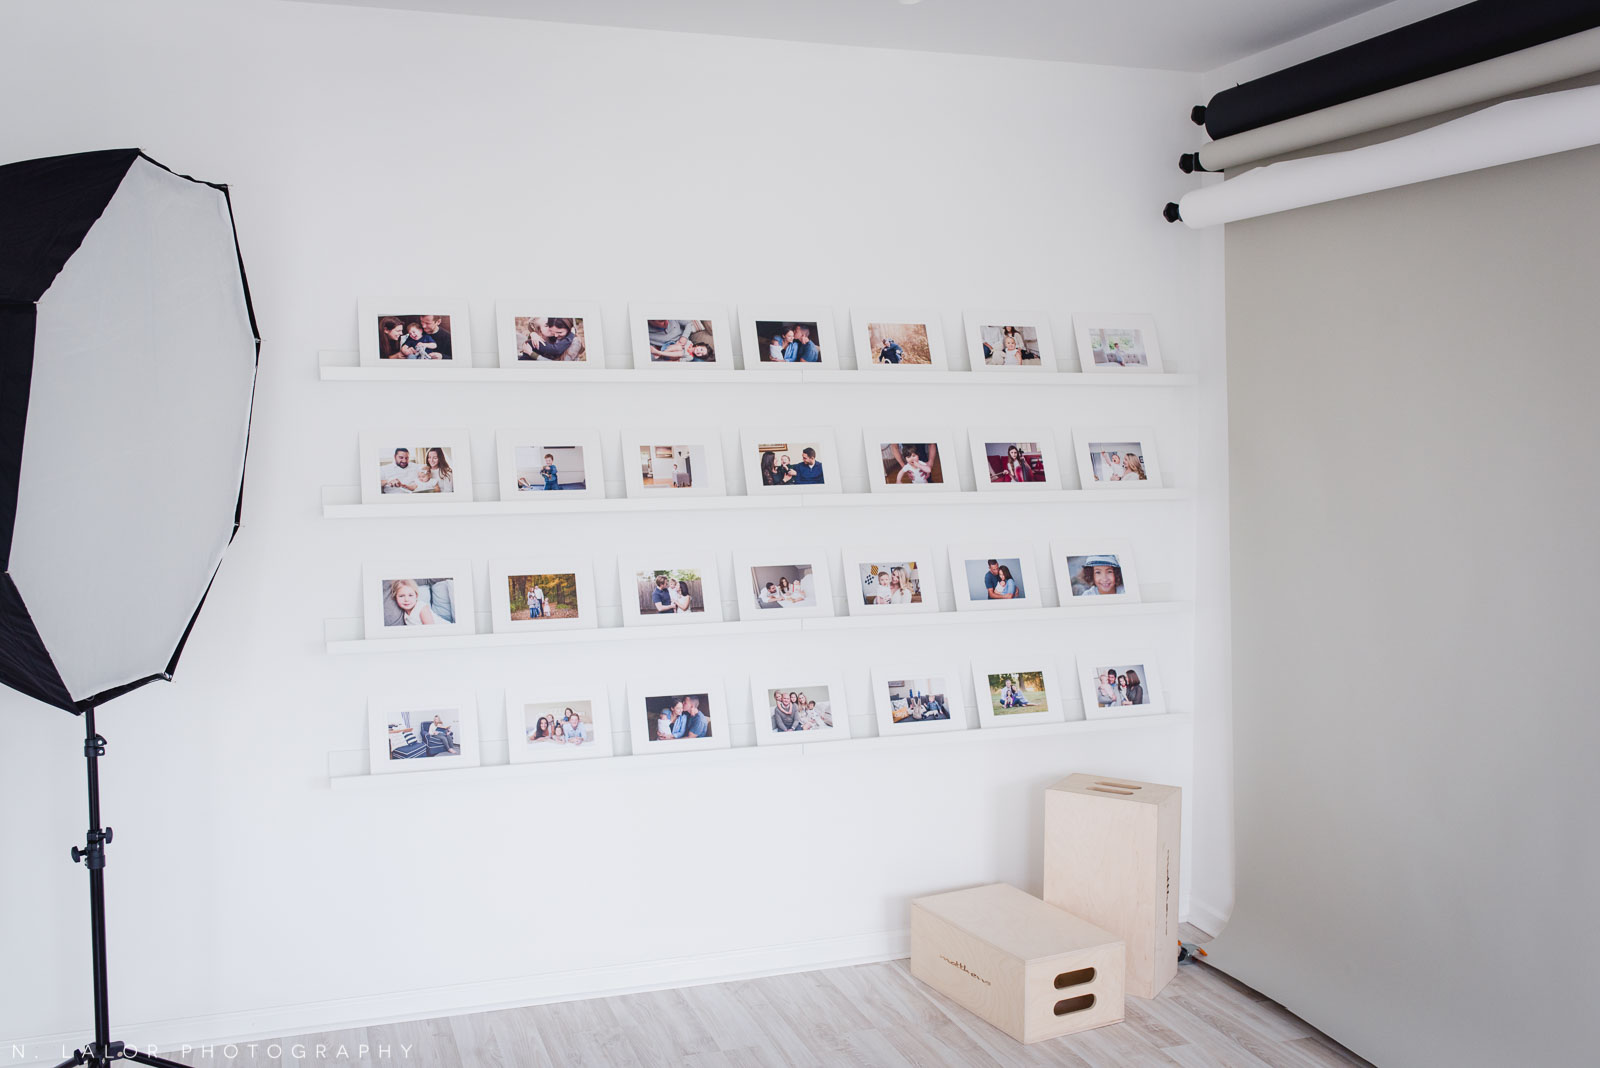 The reveal wall for Ordering Appointments.